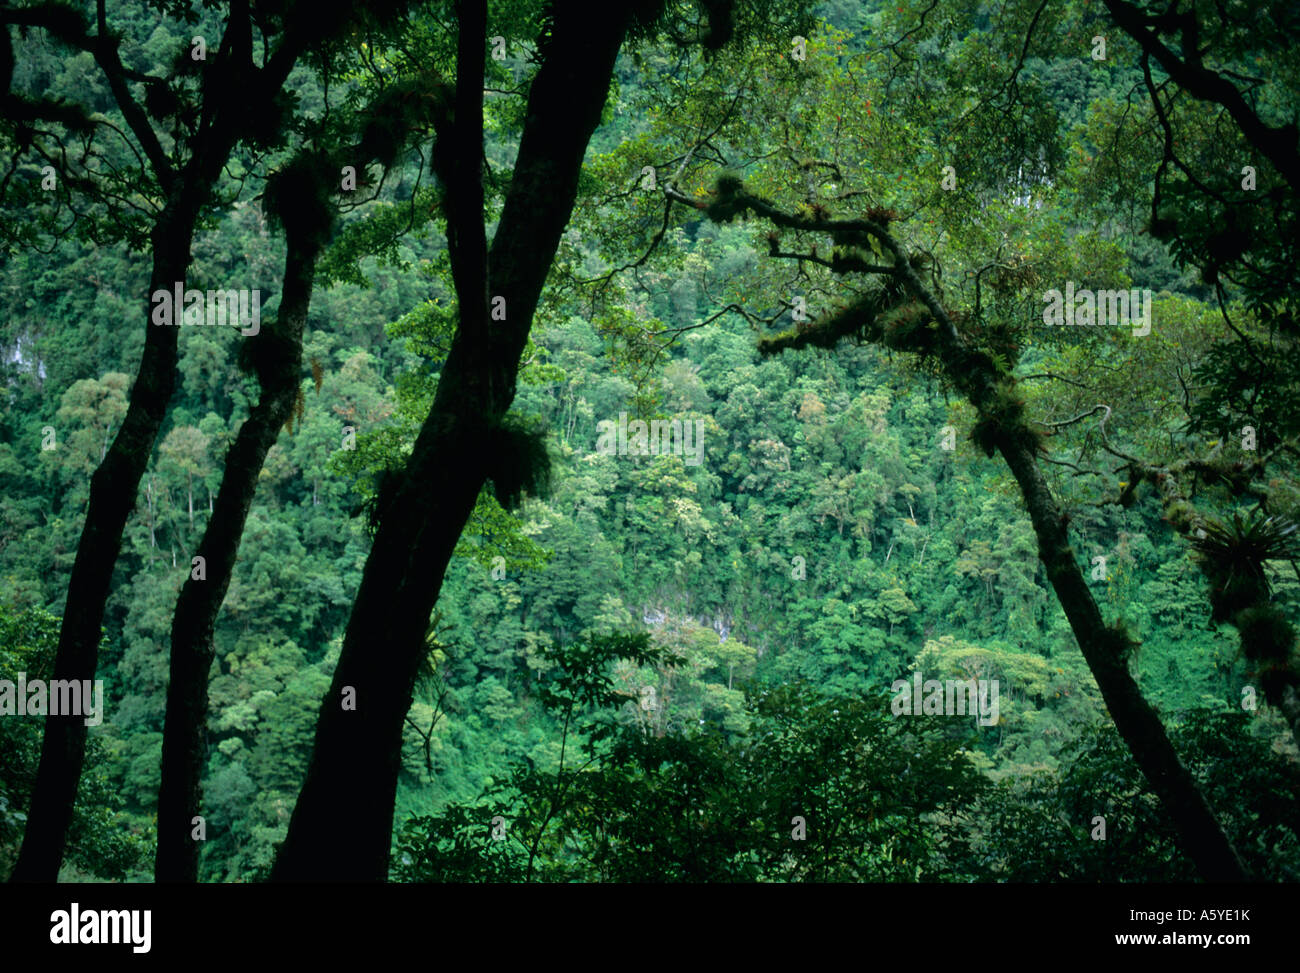 Panama, rainforest on slopes of , habitat for Quetzals - Stock Image